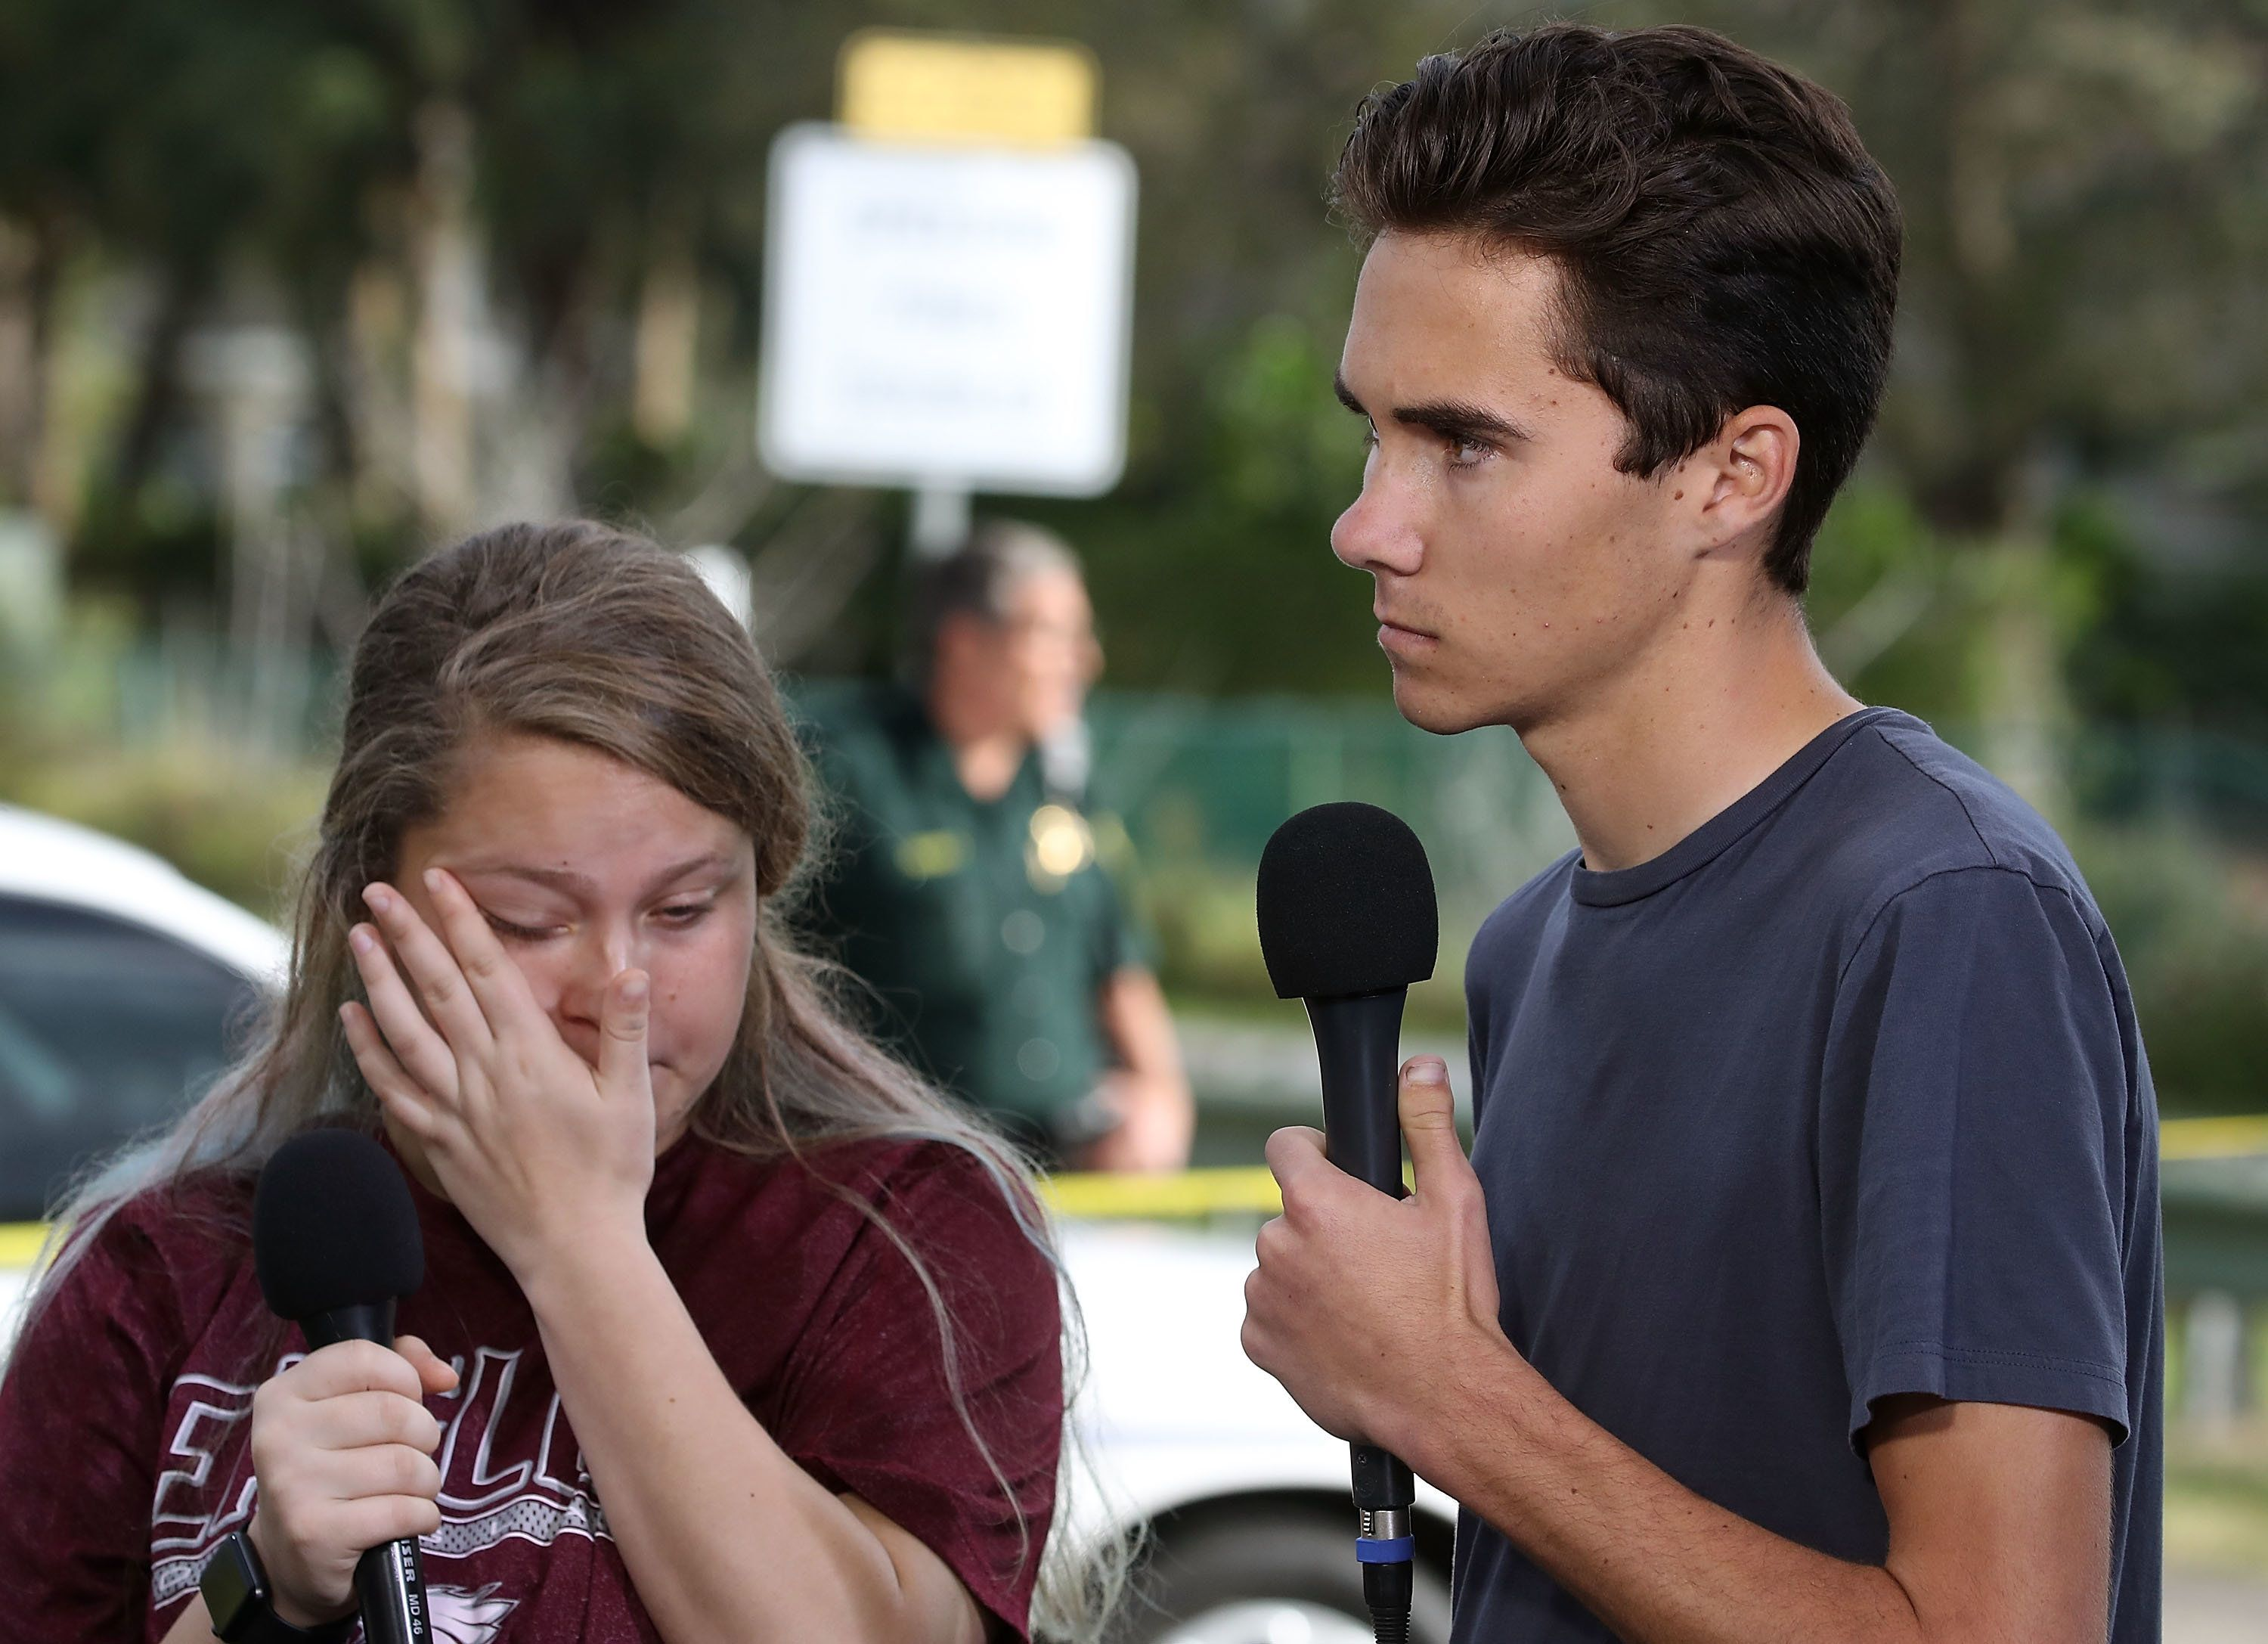 PARKLAND, FL - FEBRUARY 15: Students Kelsey Friend (L) and David Hogg recount their stories about yesterday's mass shooting at the Marjory Stoneman Douglas High School where 17 people were killed, on February 15, 2018 in Parkland, Florida. Police arrested the suspect after a short manhunt, and have identified him as 19 year old former student Nikolas Cruz.  (Photo by Mark Wilson/Getty Images)